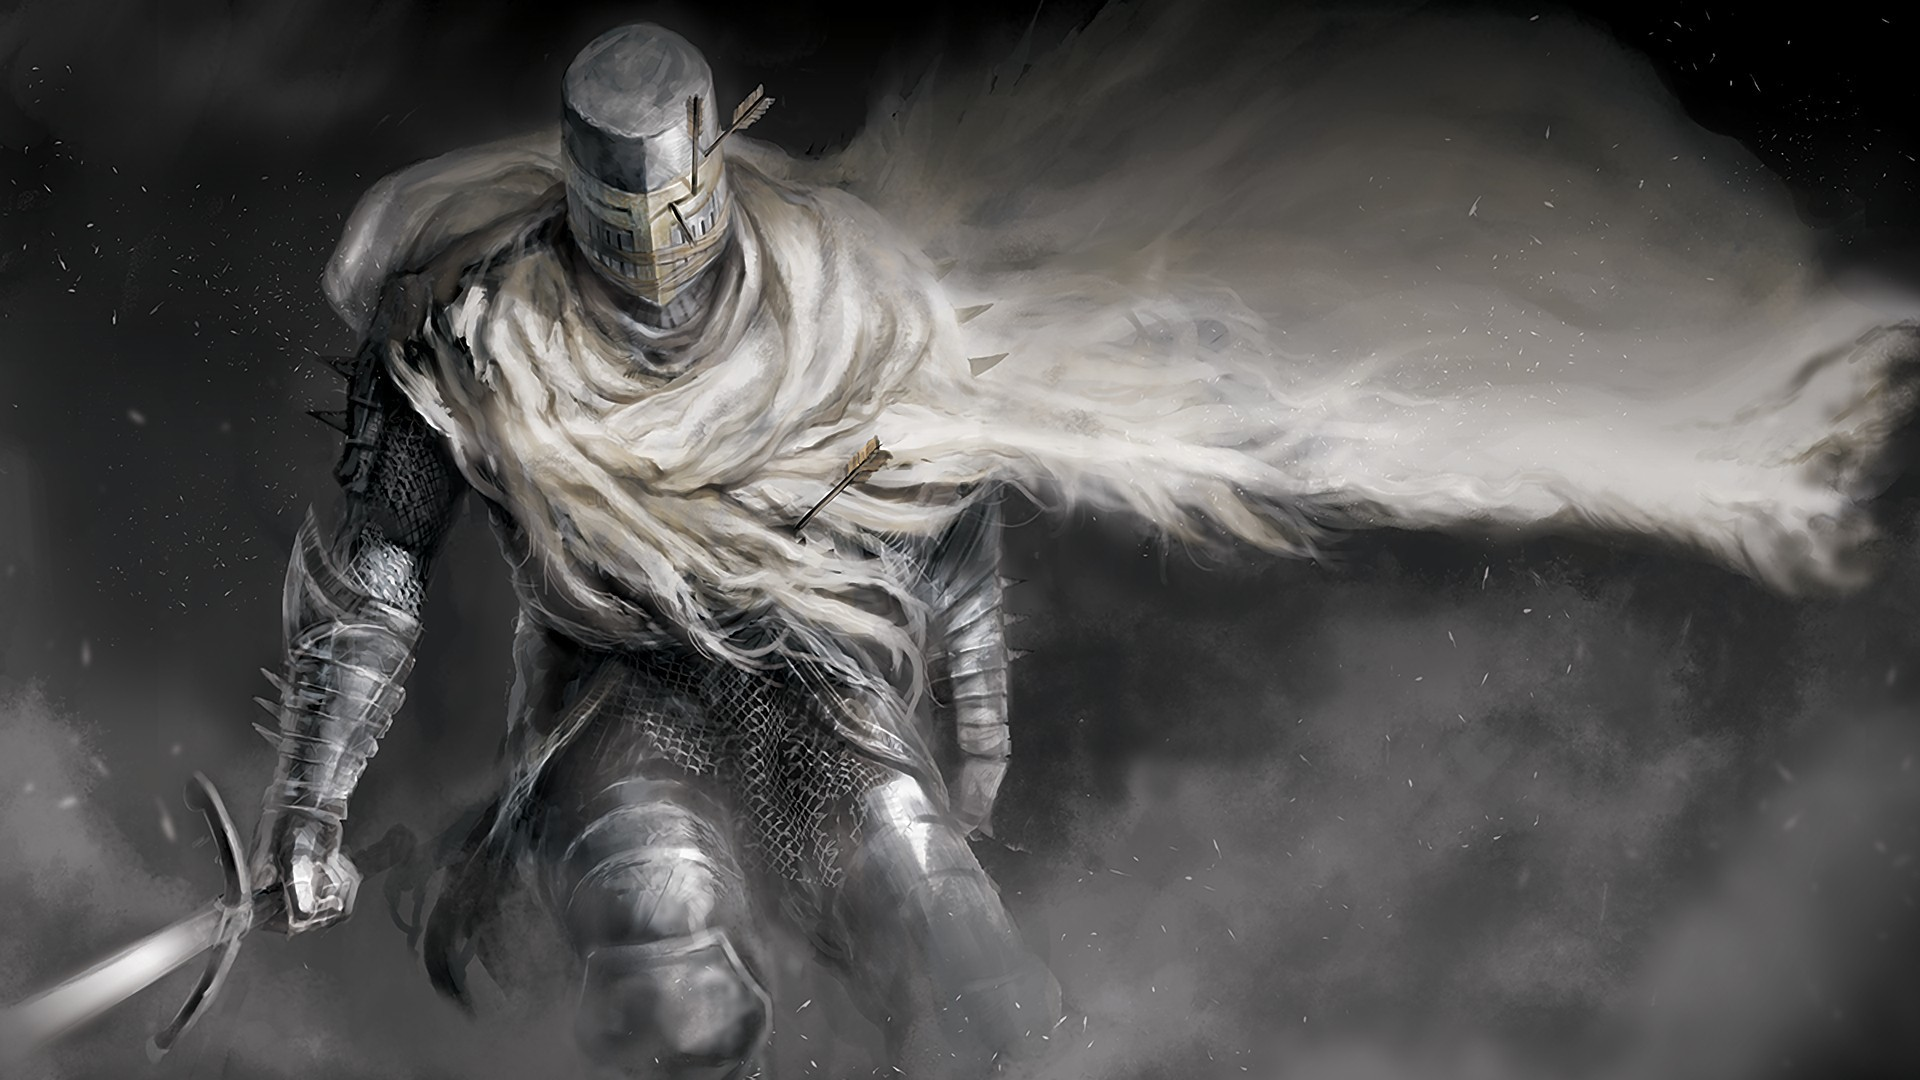 2560x1600 Battle Knight Weapons Sword Warrior Dragon Wallpaper At Fantasy Wallpapers